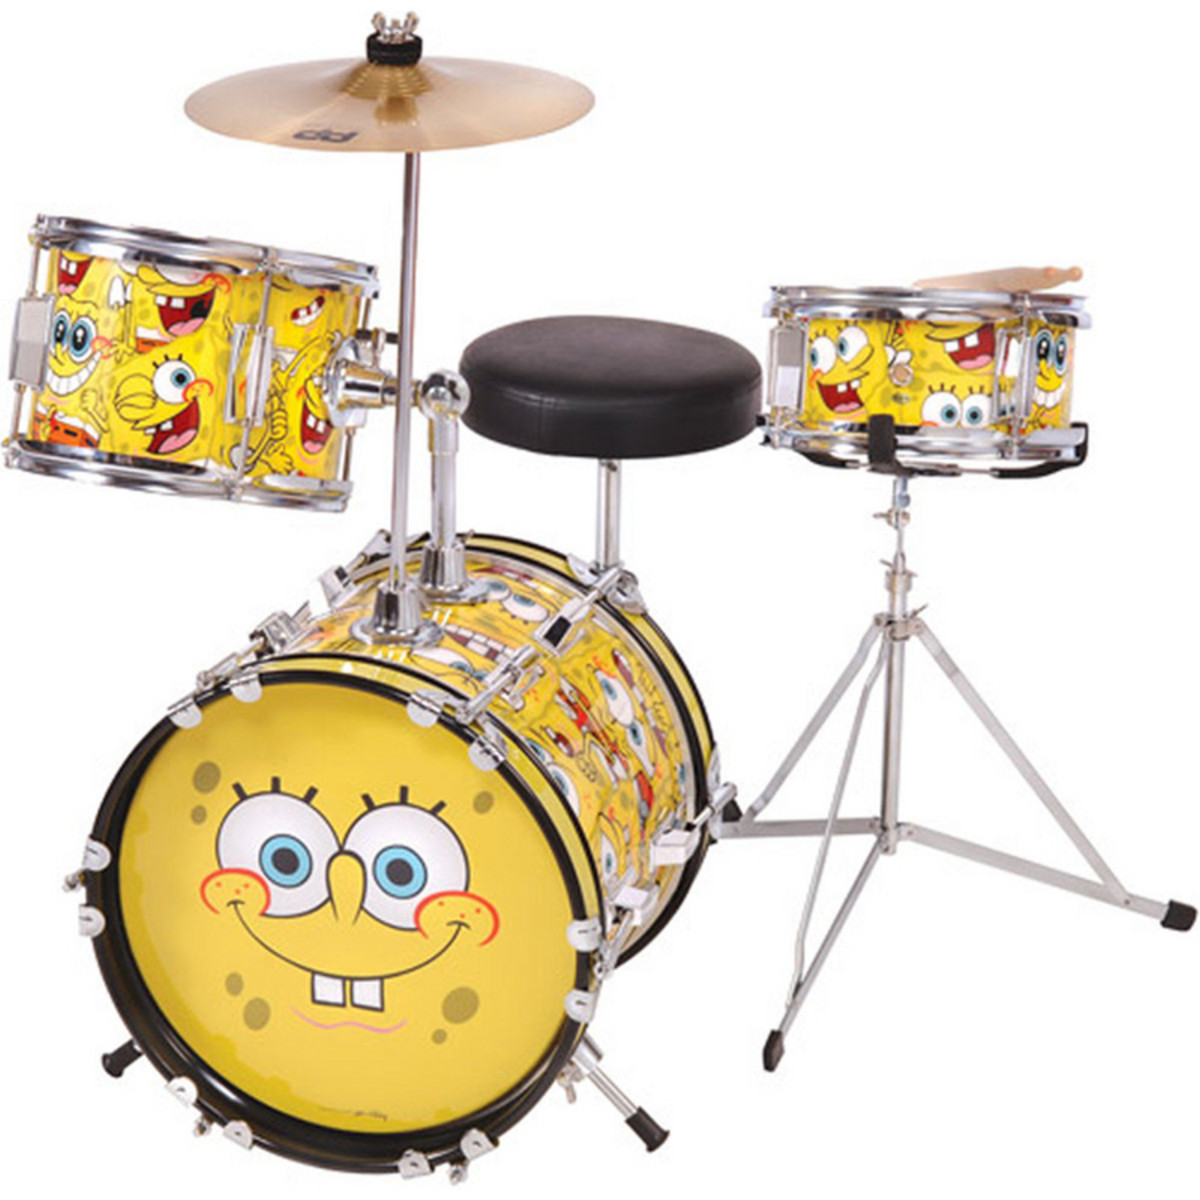 Disc Spongebob Squarepants 3 Piece Junior Drum Kit At